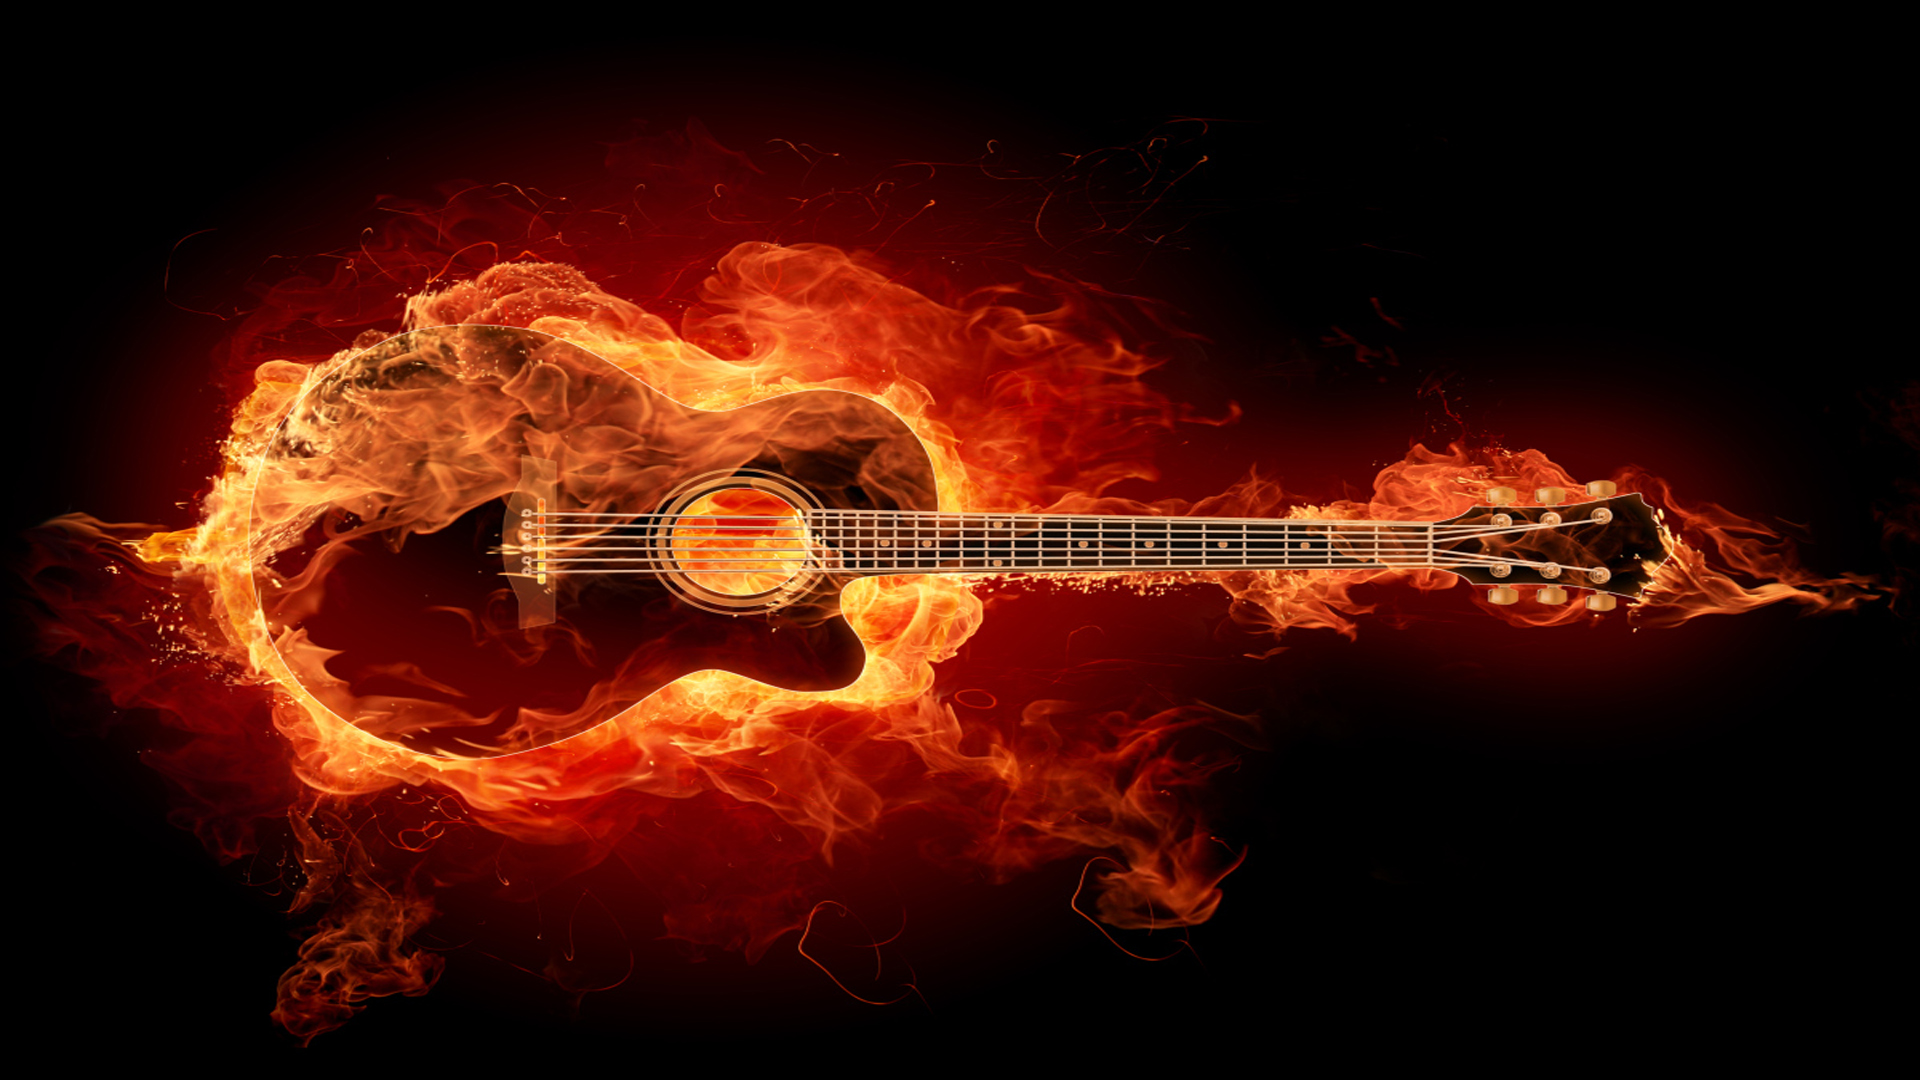 electric guitar art wallpaper fire - photo #16